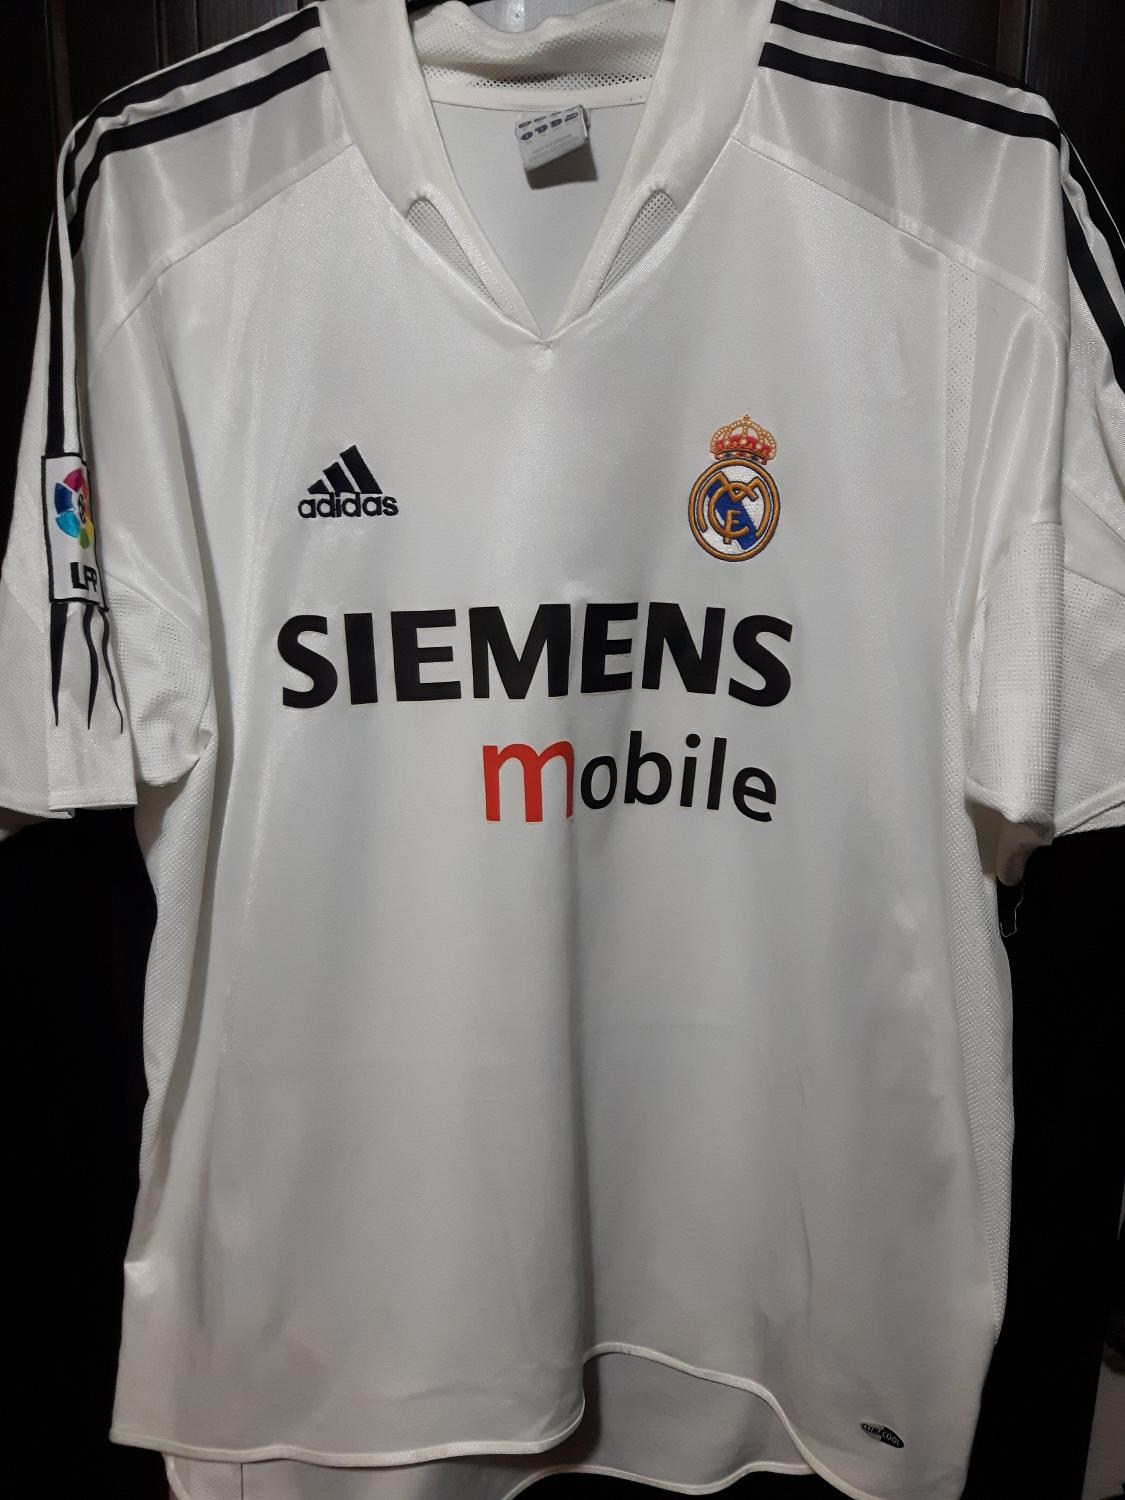 save off 8a6c6 64c56 Real Madrid David Beckham #23 jersey